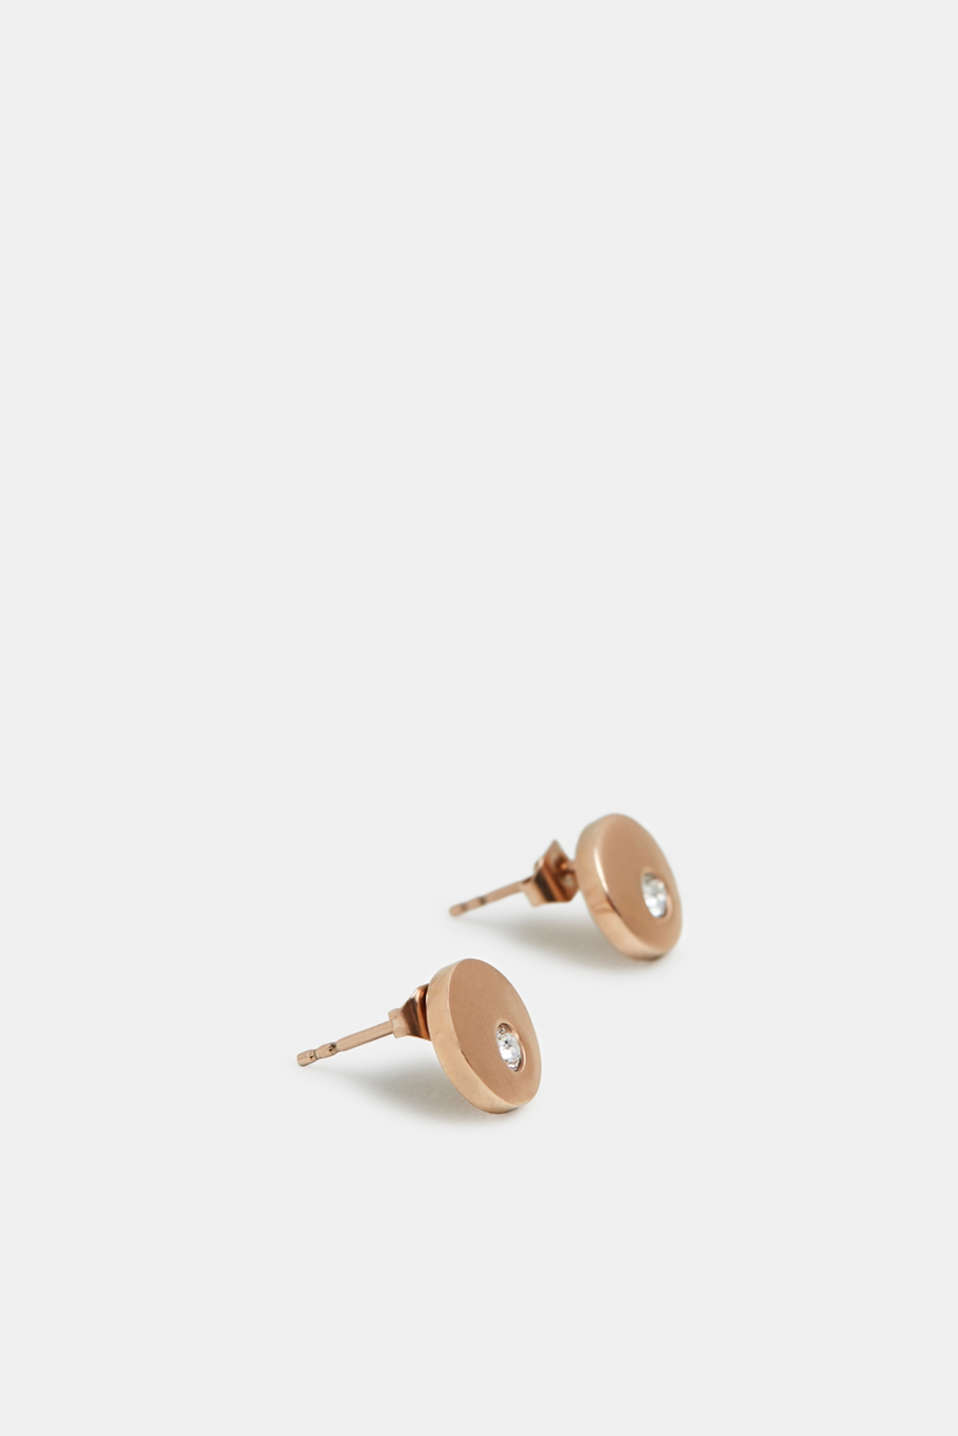 Stainless steel stud earrings with zirconia trim, ROSEGOLD, detail image number 1